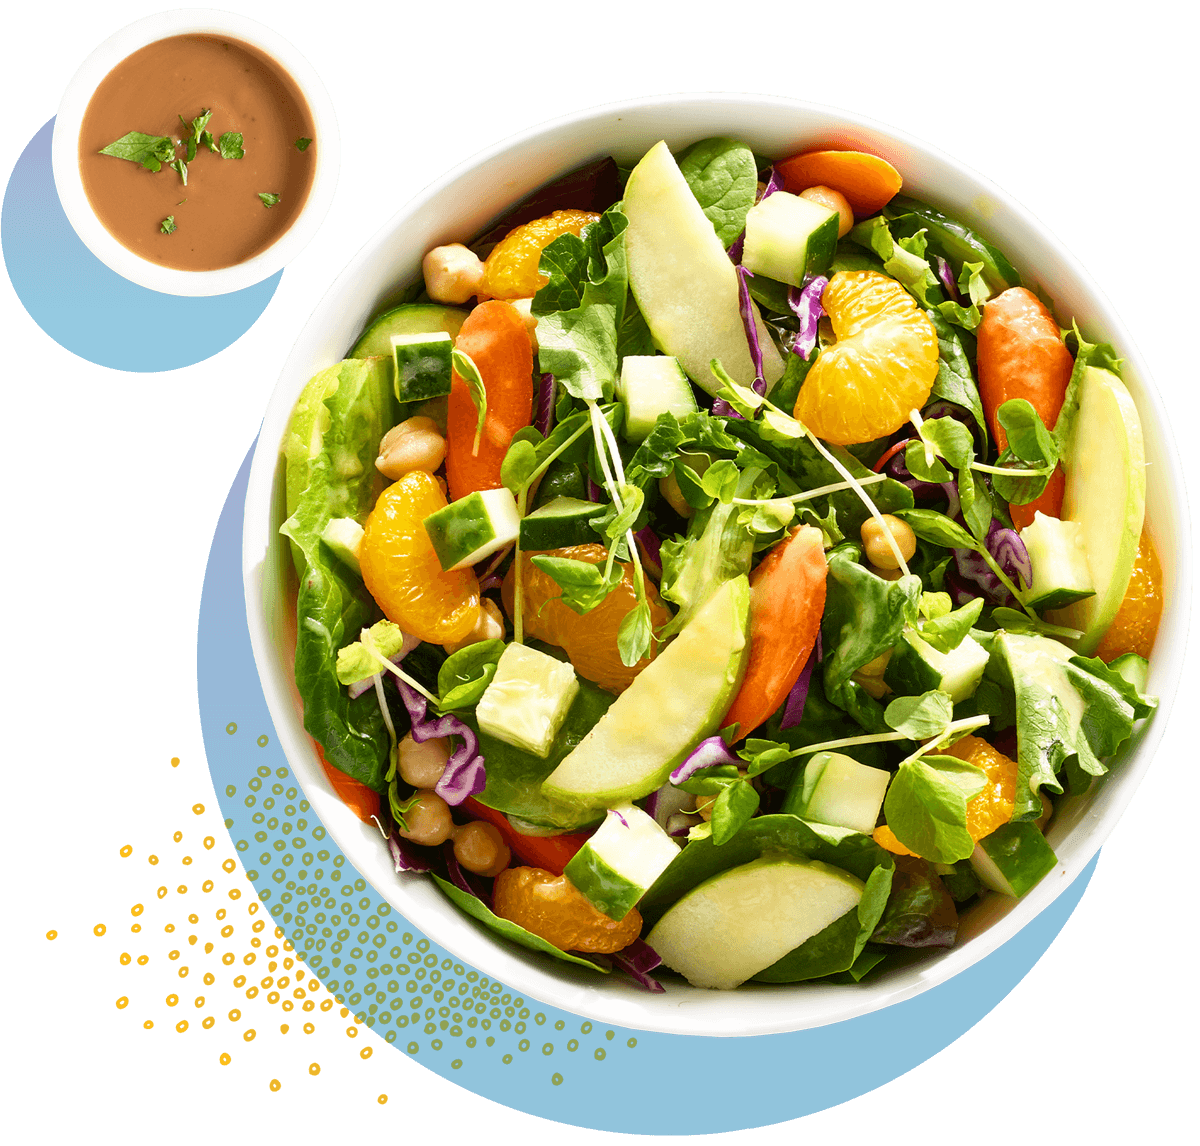 mandarin orange and apple salad with balsamic dressing